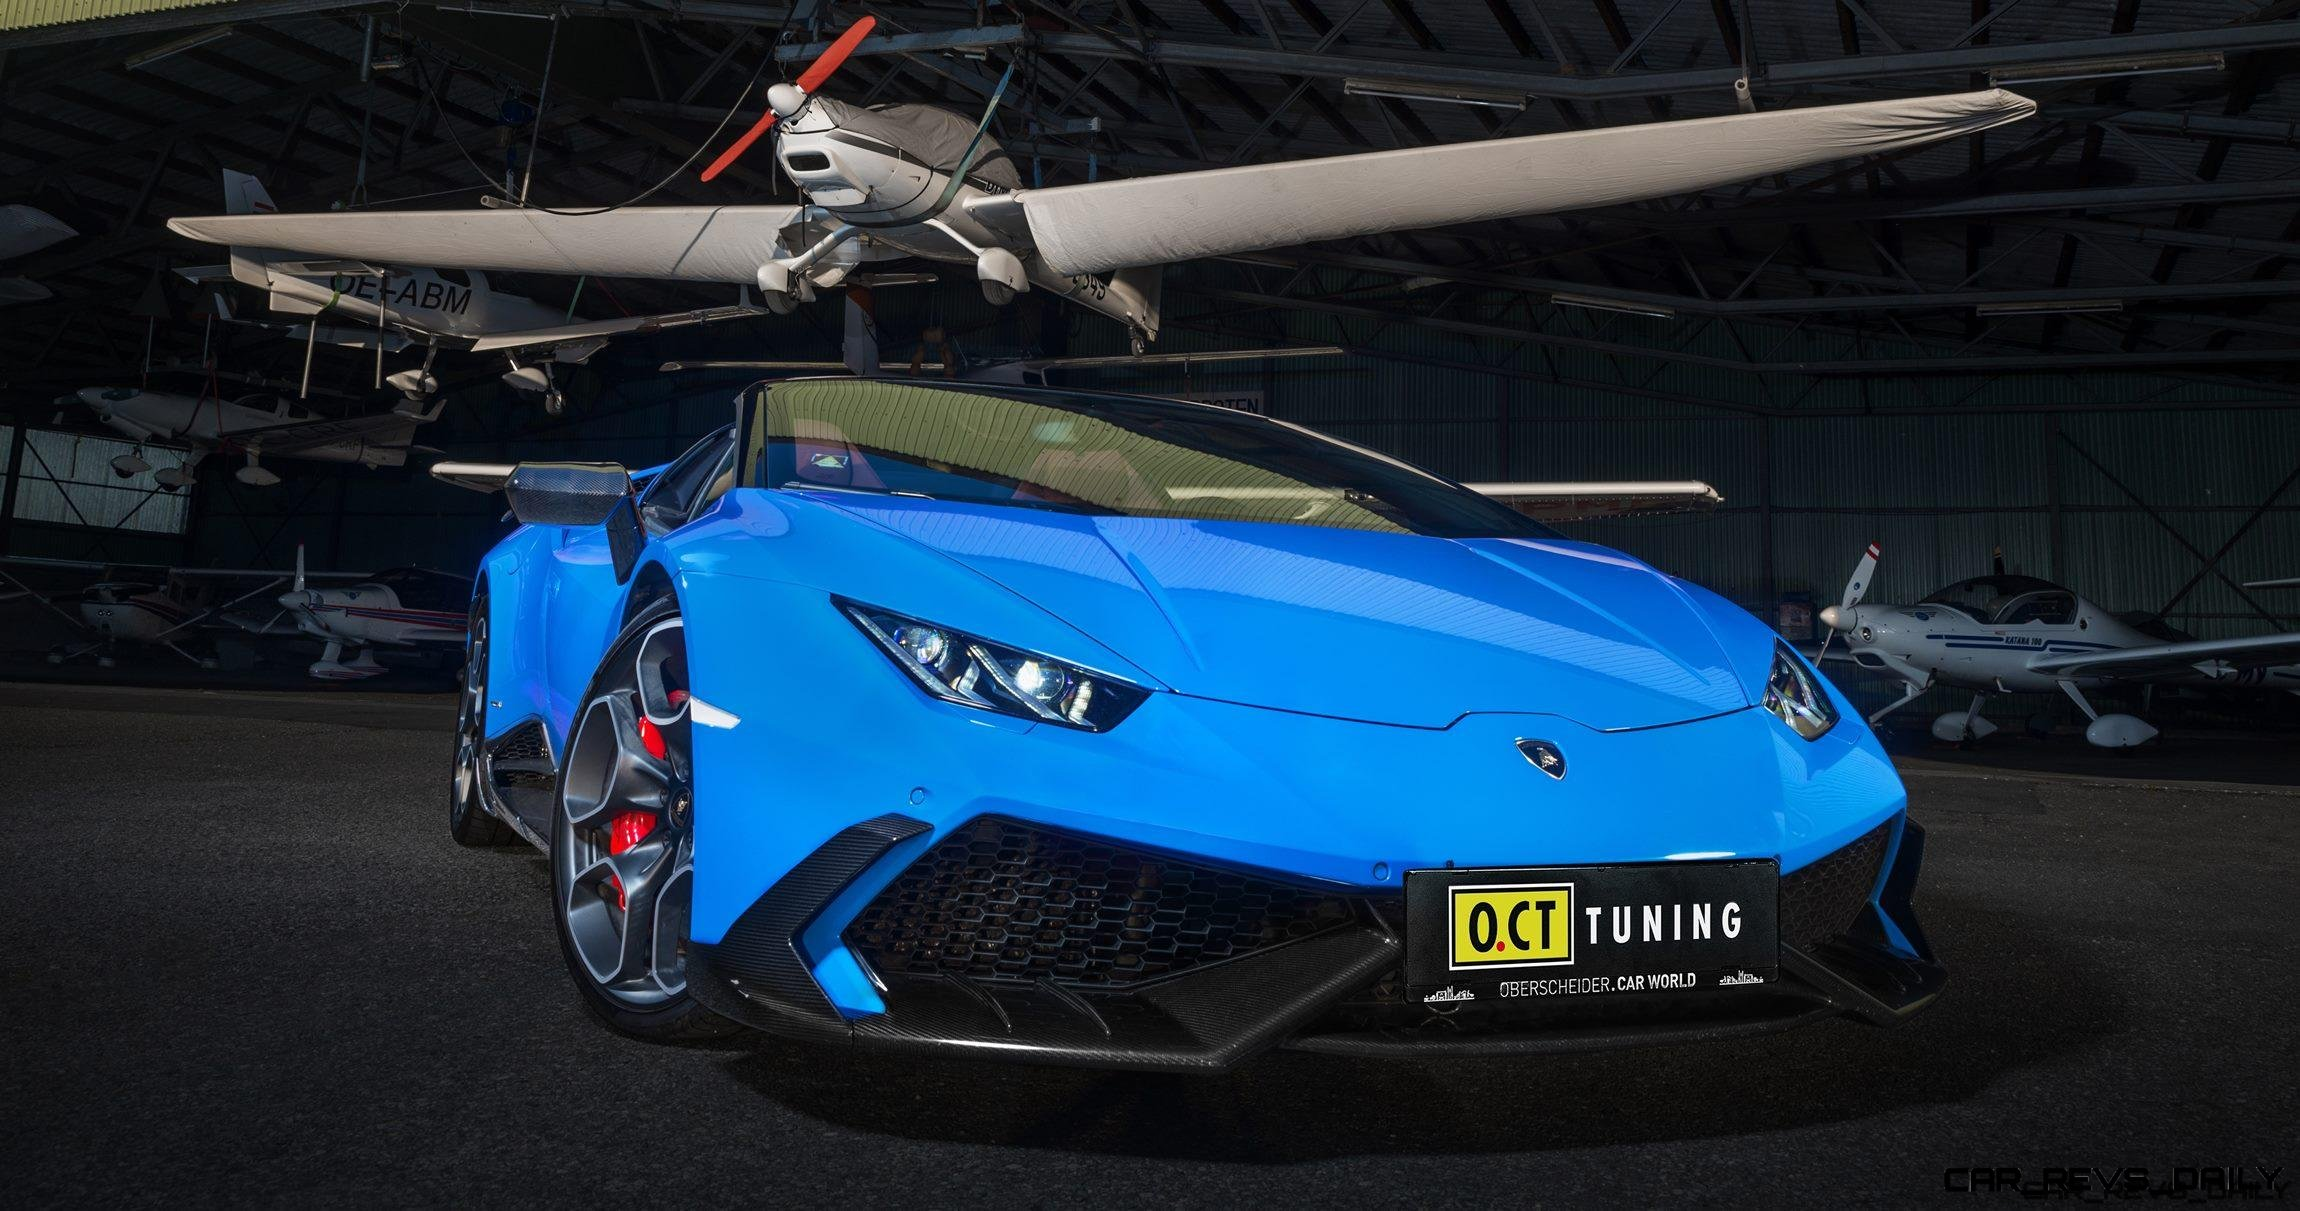 O Ct Tuning Matches With 800hp Huracan Spyder